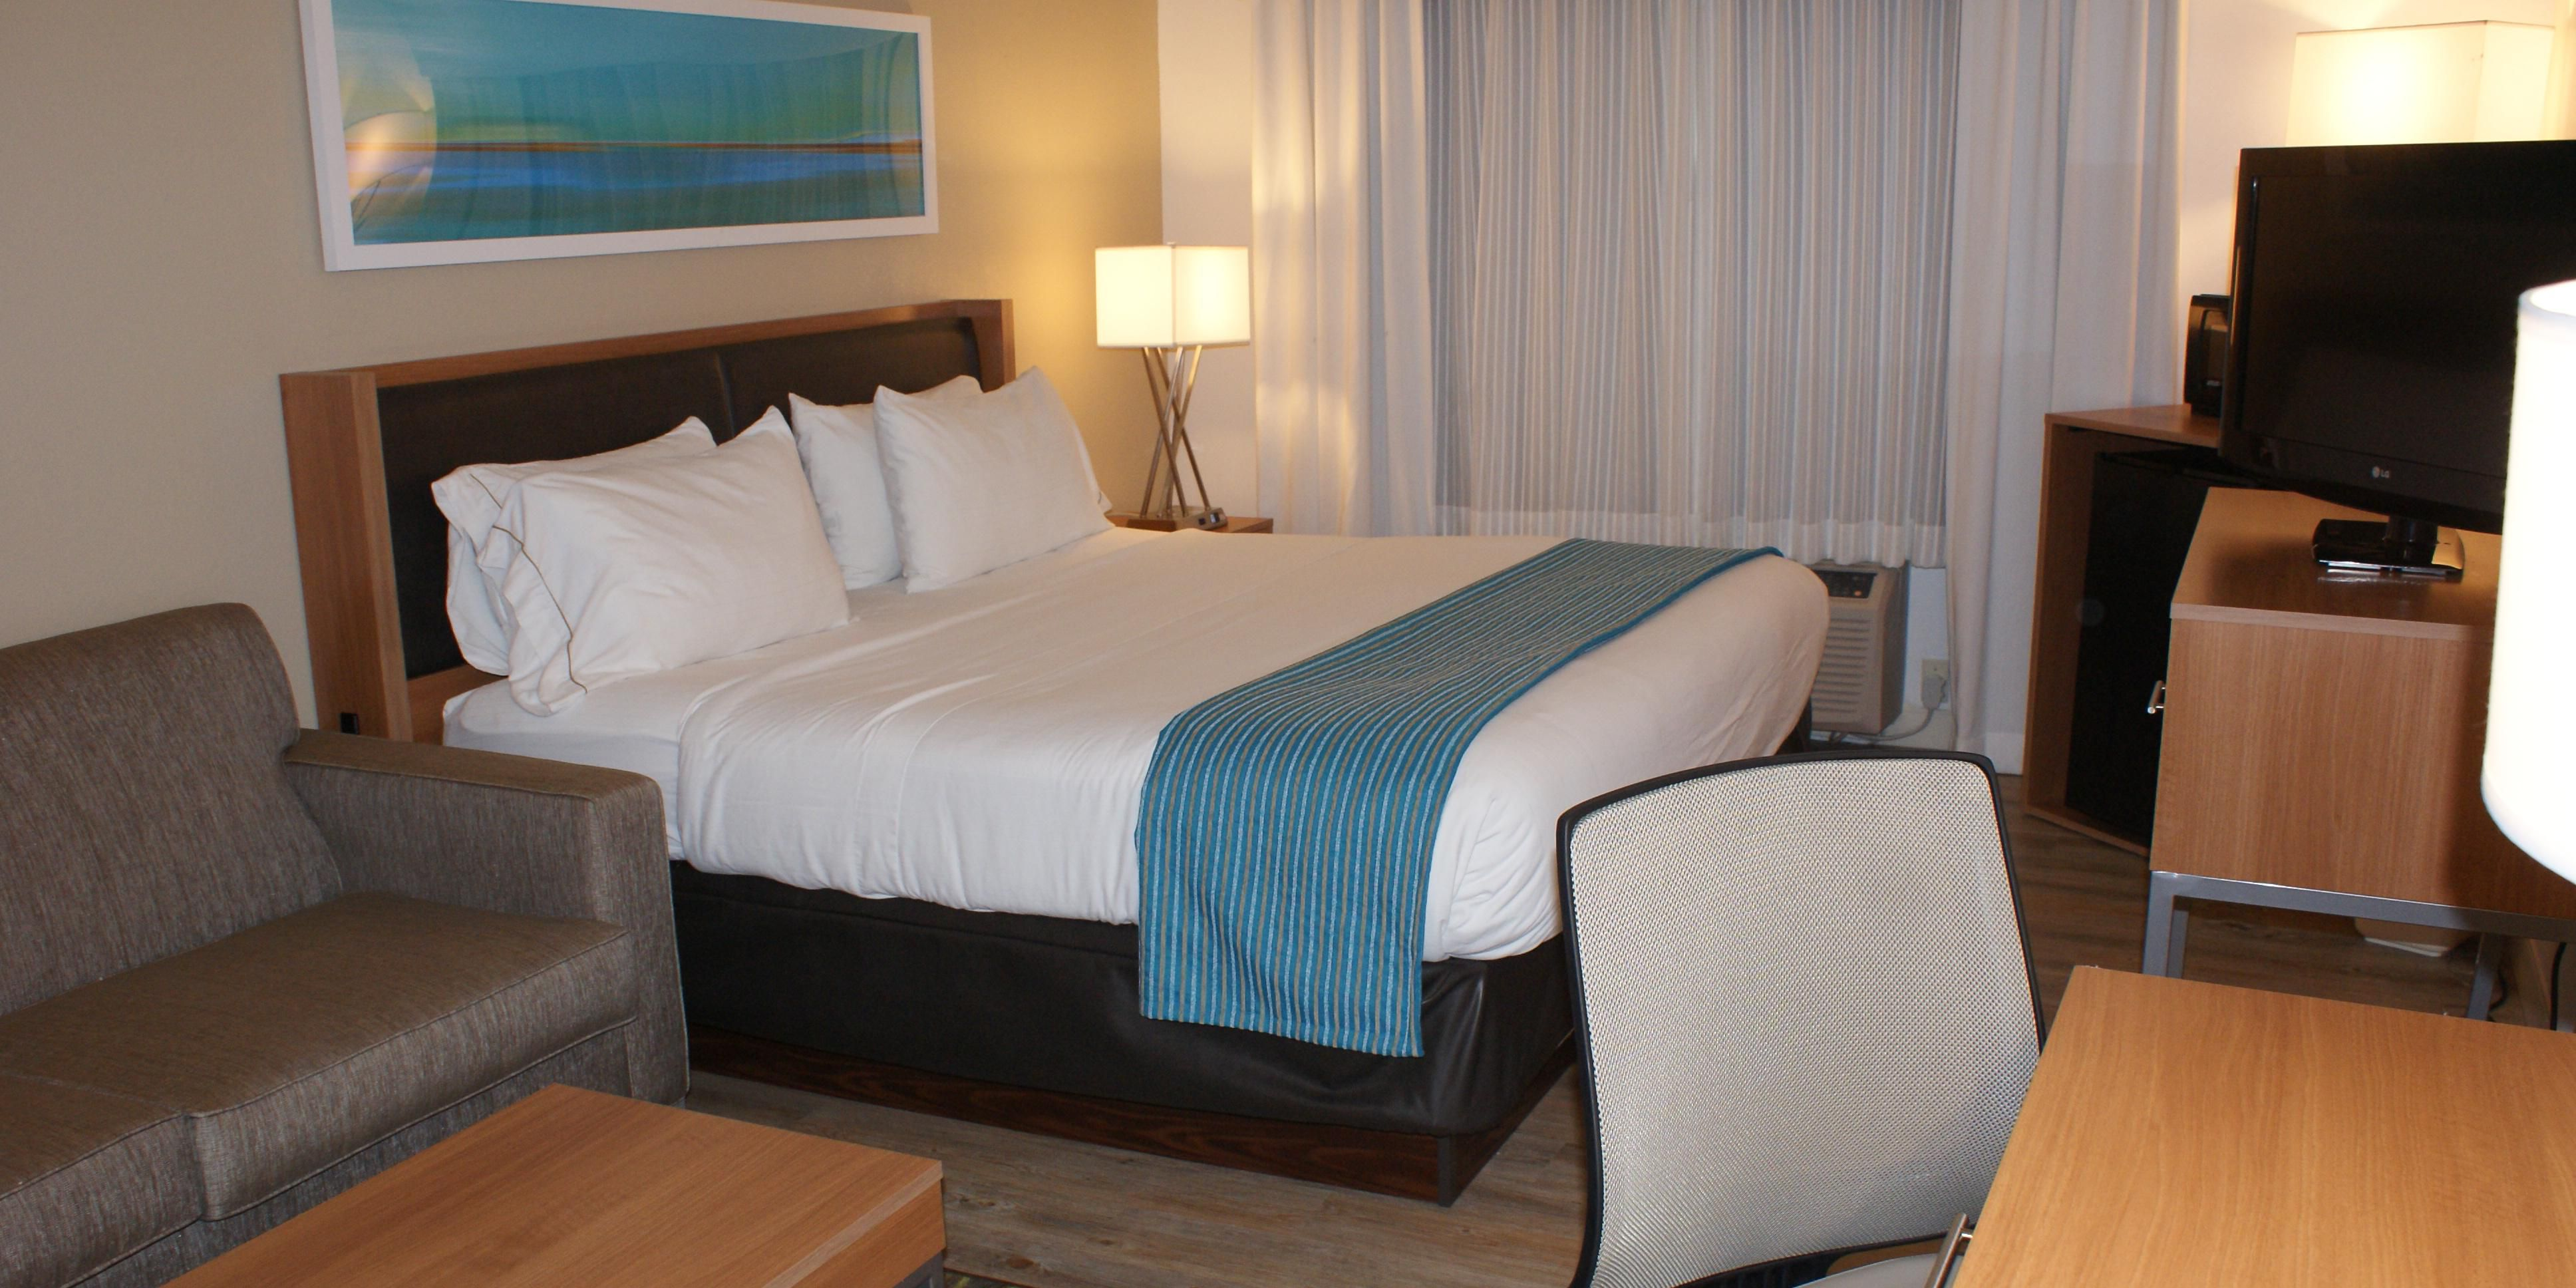 Holiday Inn Express Pittsburgh North Harmarville Hotel by IHG